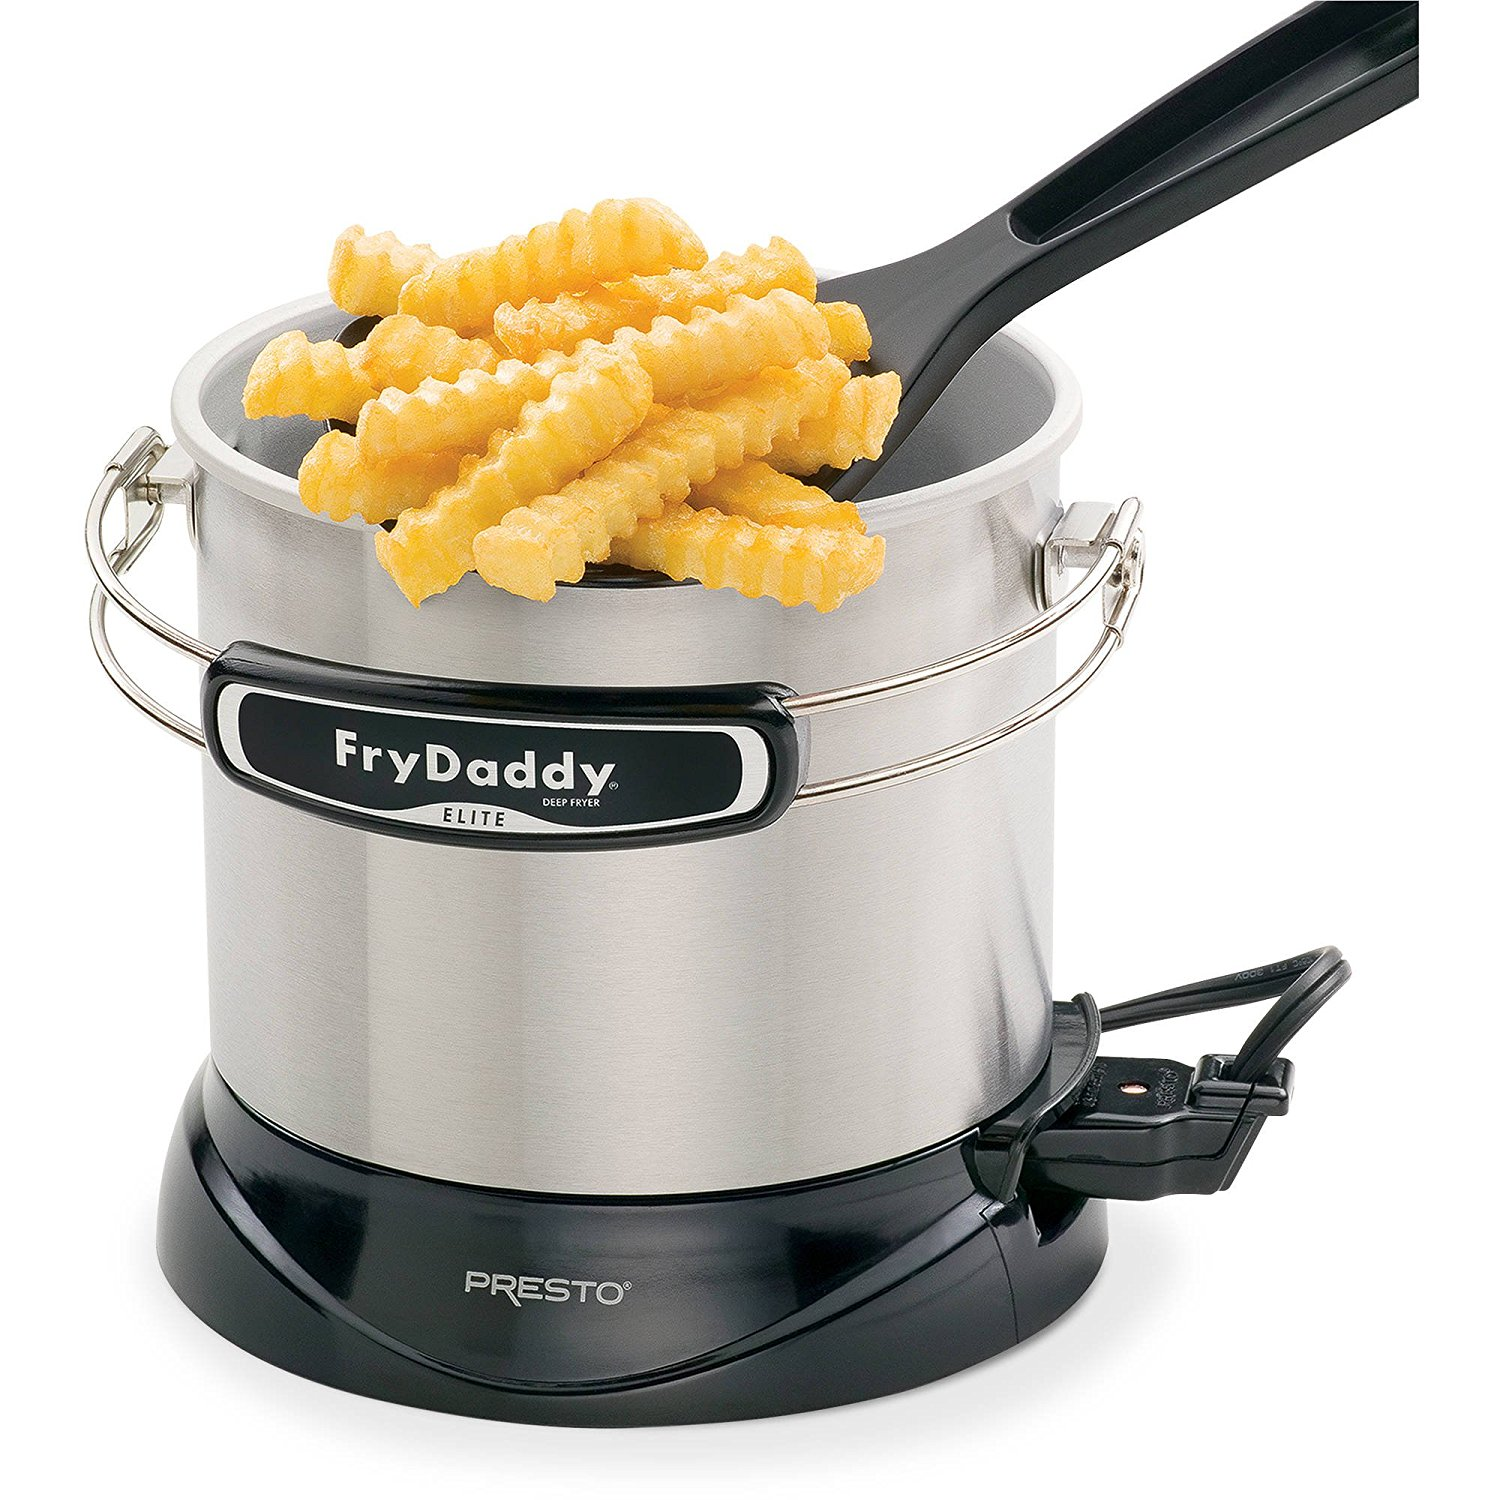 Frydaddy Elite 4-cup Electric Deep Fryer Delicious Deep-fried Foods, Fast and Easy 8.125 X 9.0 X 7.5, Presto FryDaddy Elite 4-Cup Electric Deep Fryer By Presto